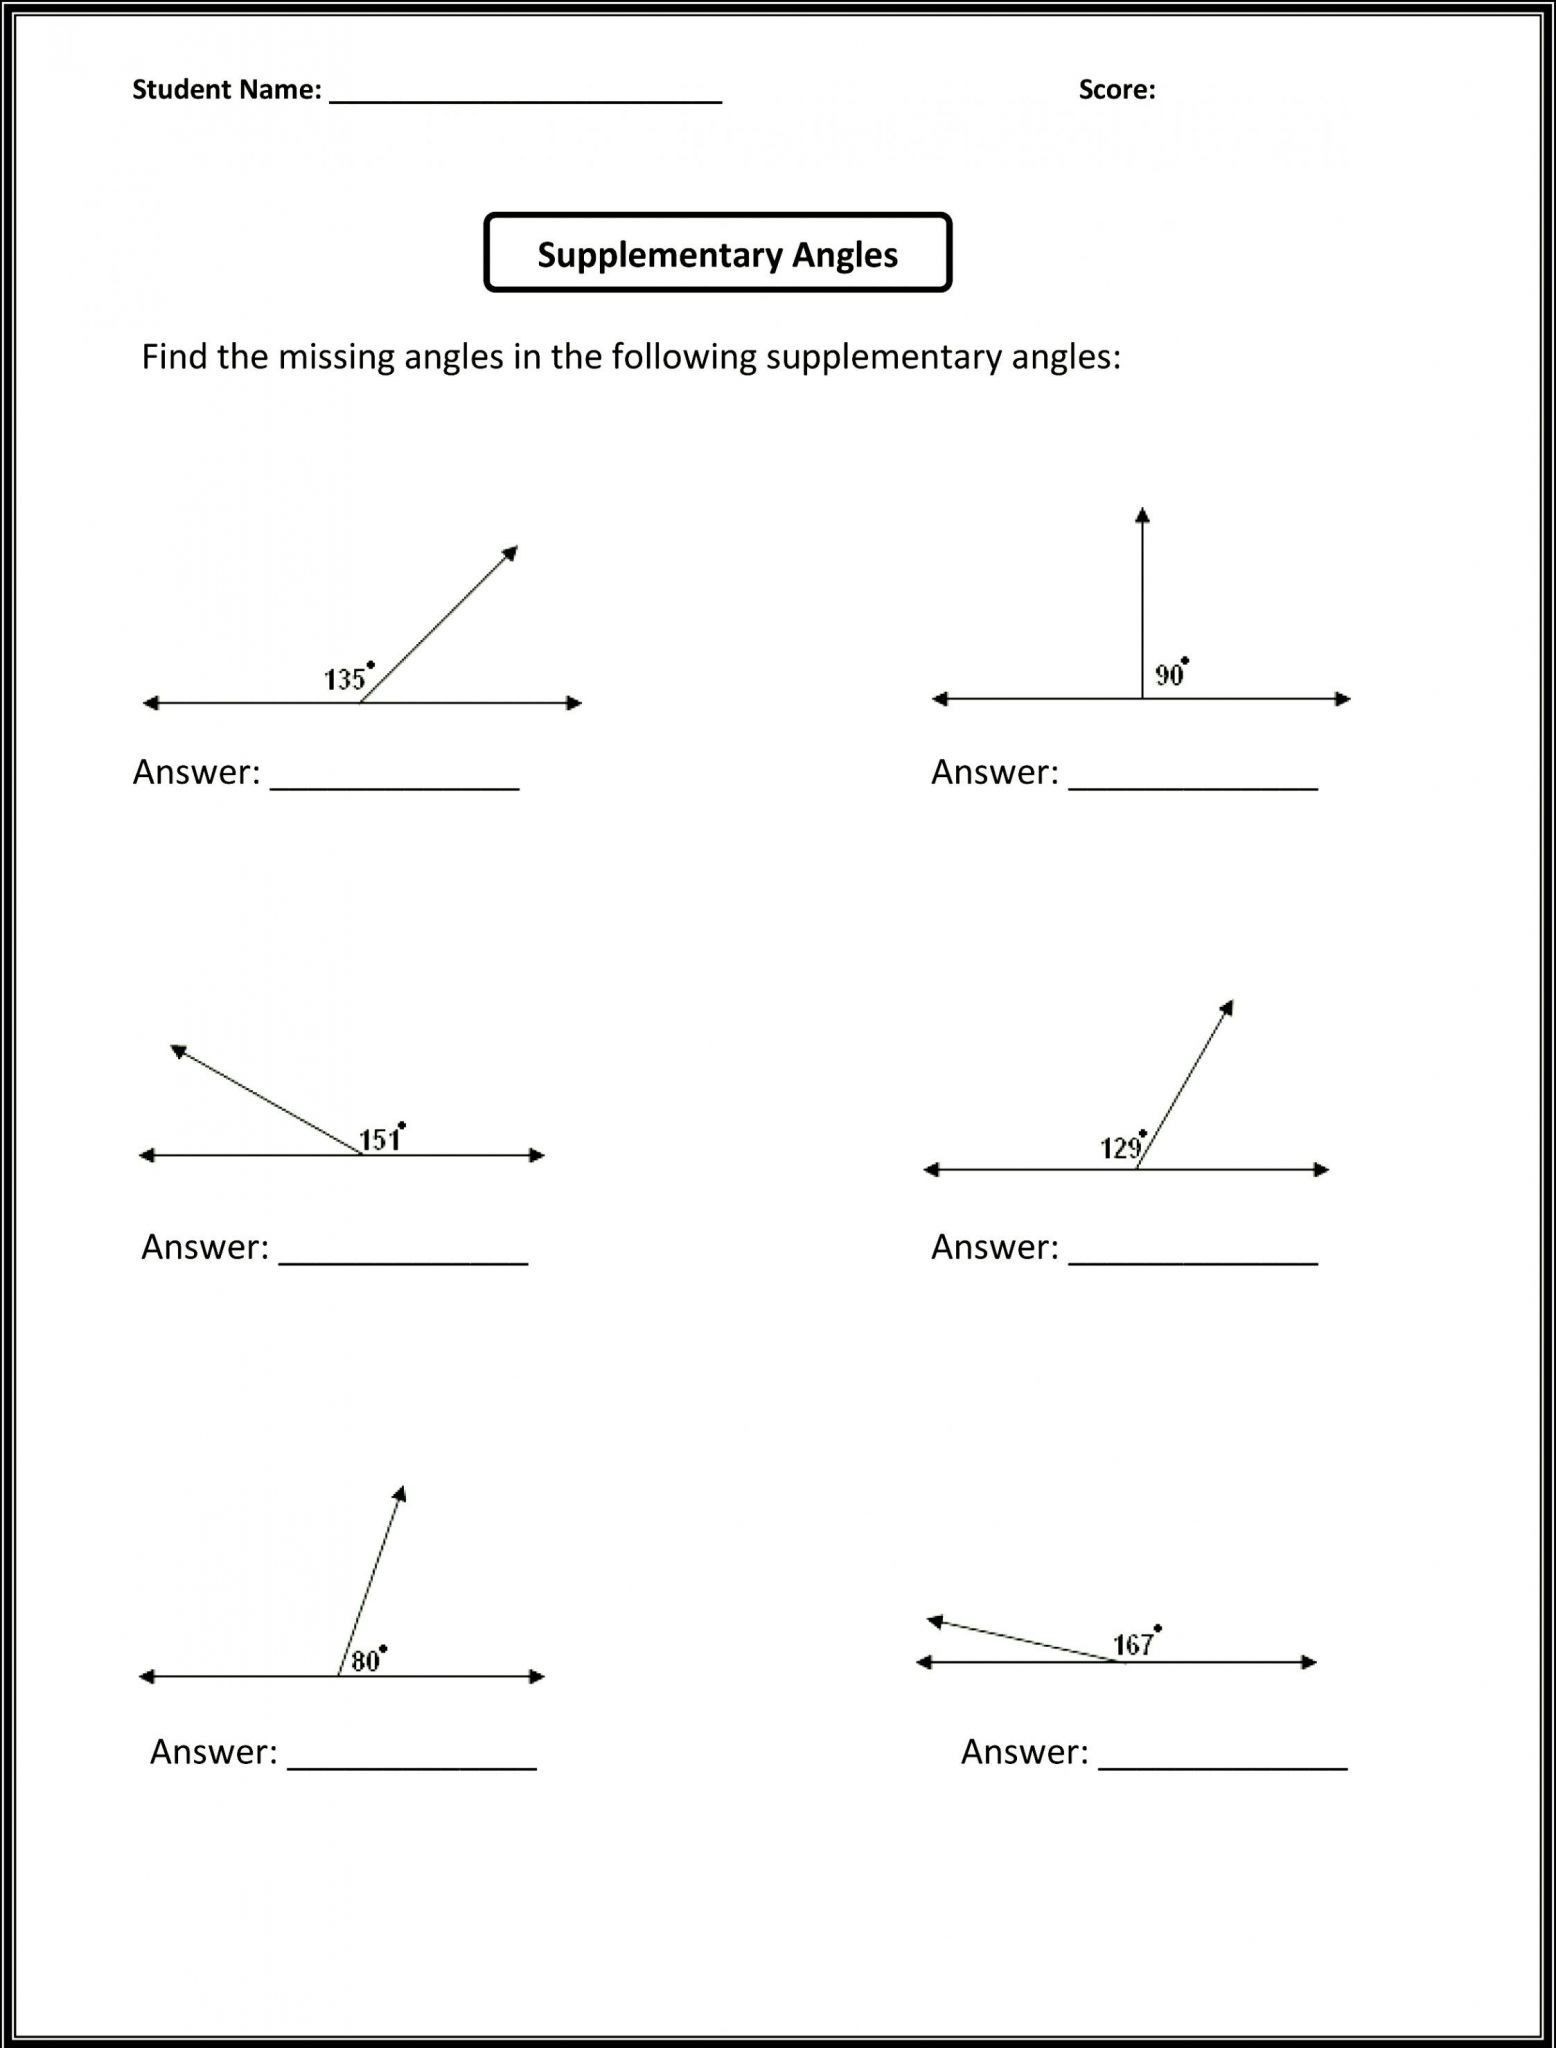 Vertical Angles Worksheet Pdf Angle Pair Relationships Worksheet Promotiontablecovers